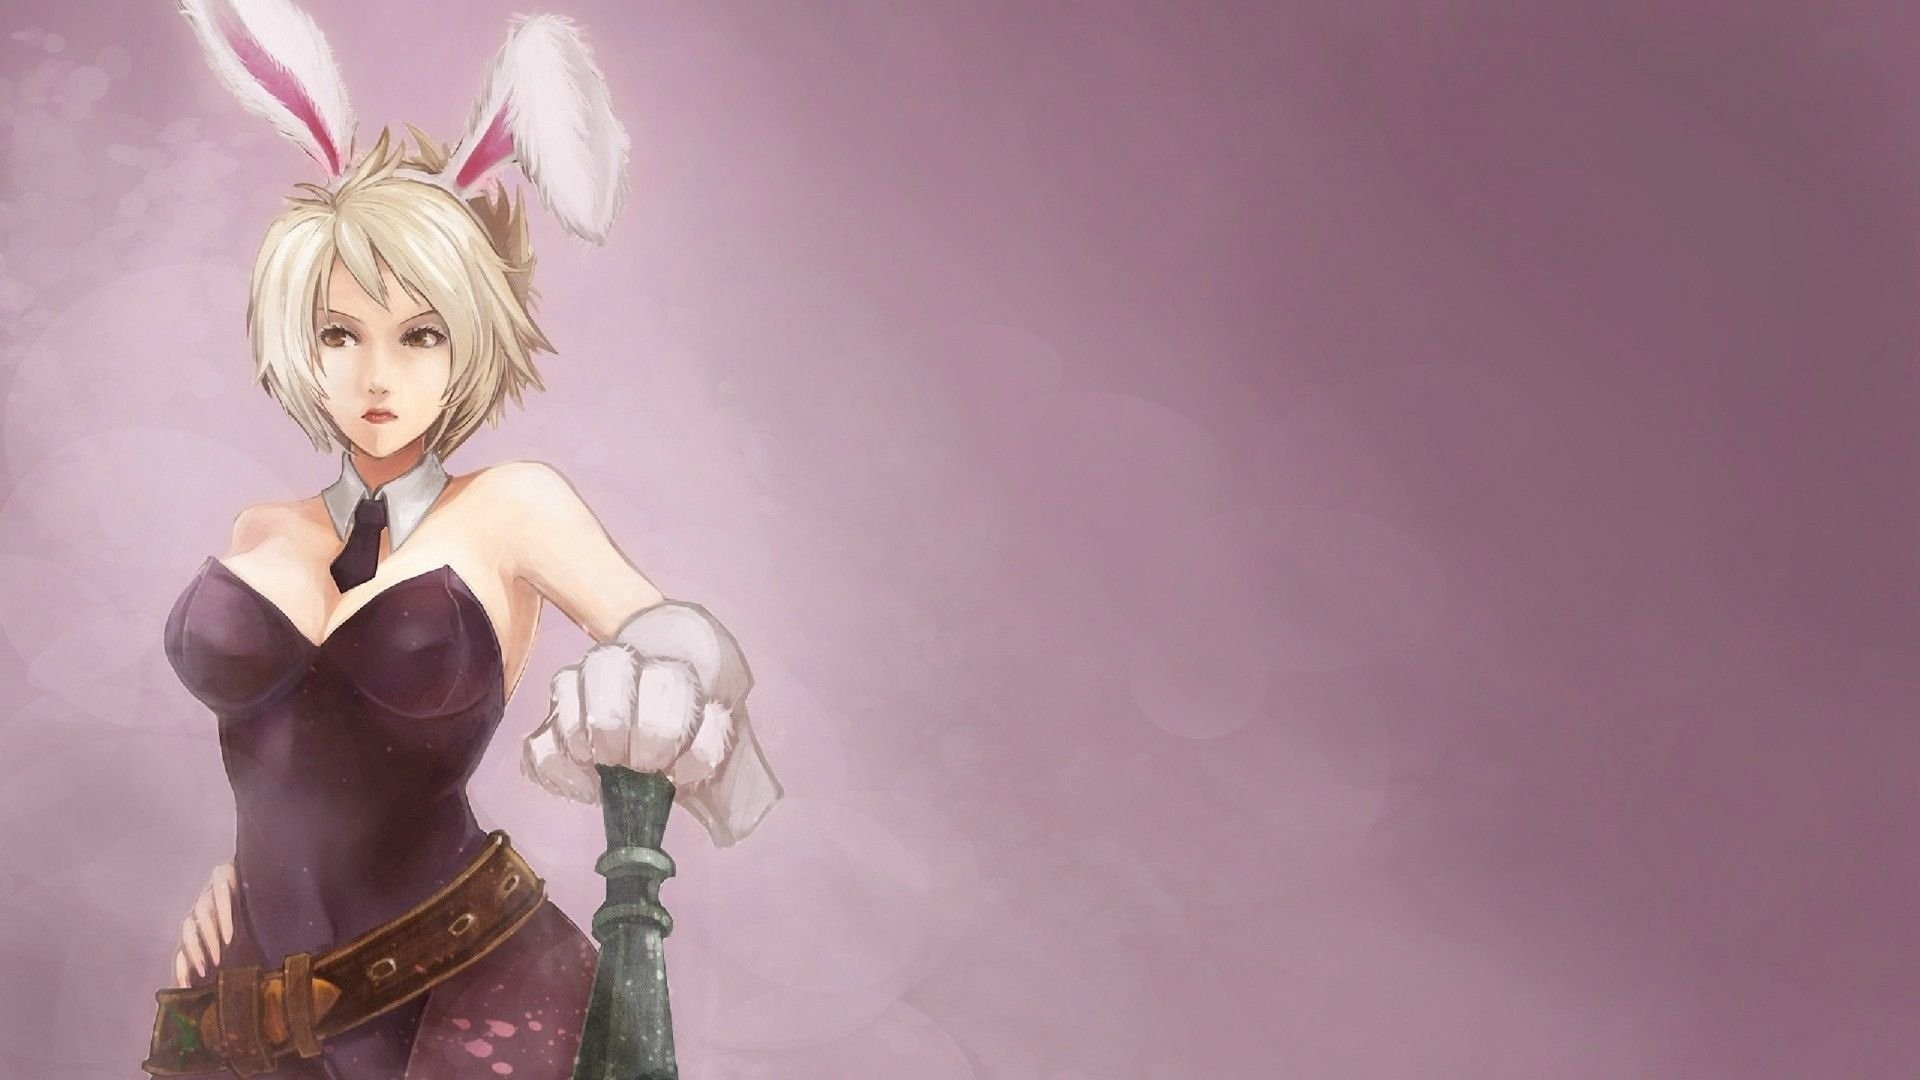 Battle Bunny Riven Wallpaper Source Many HD